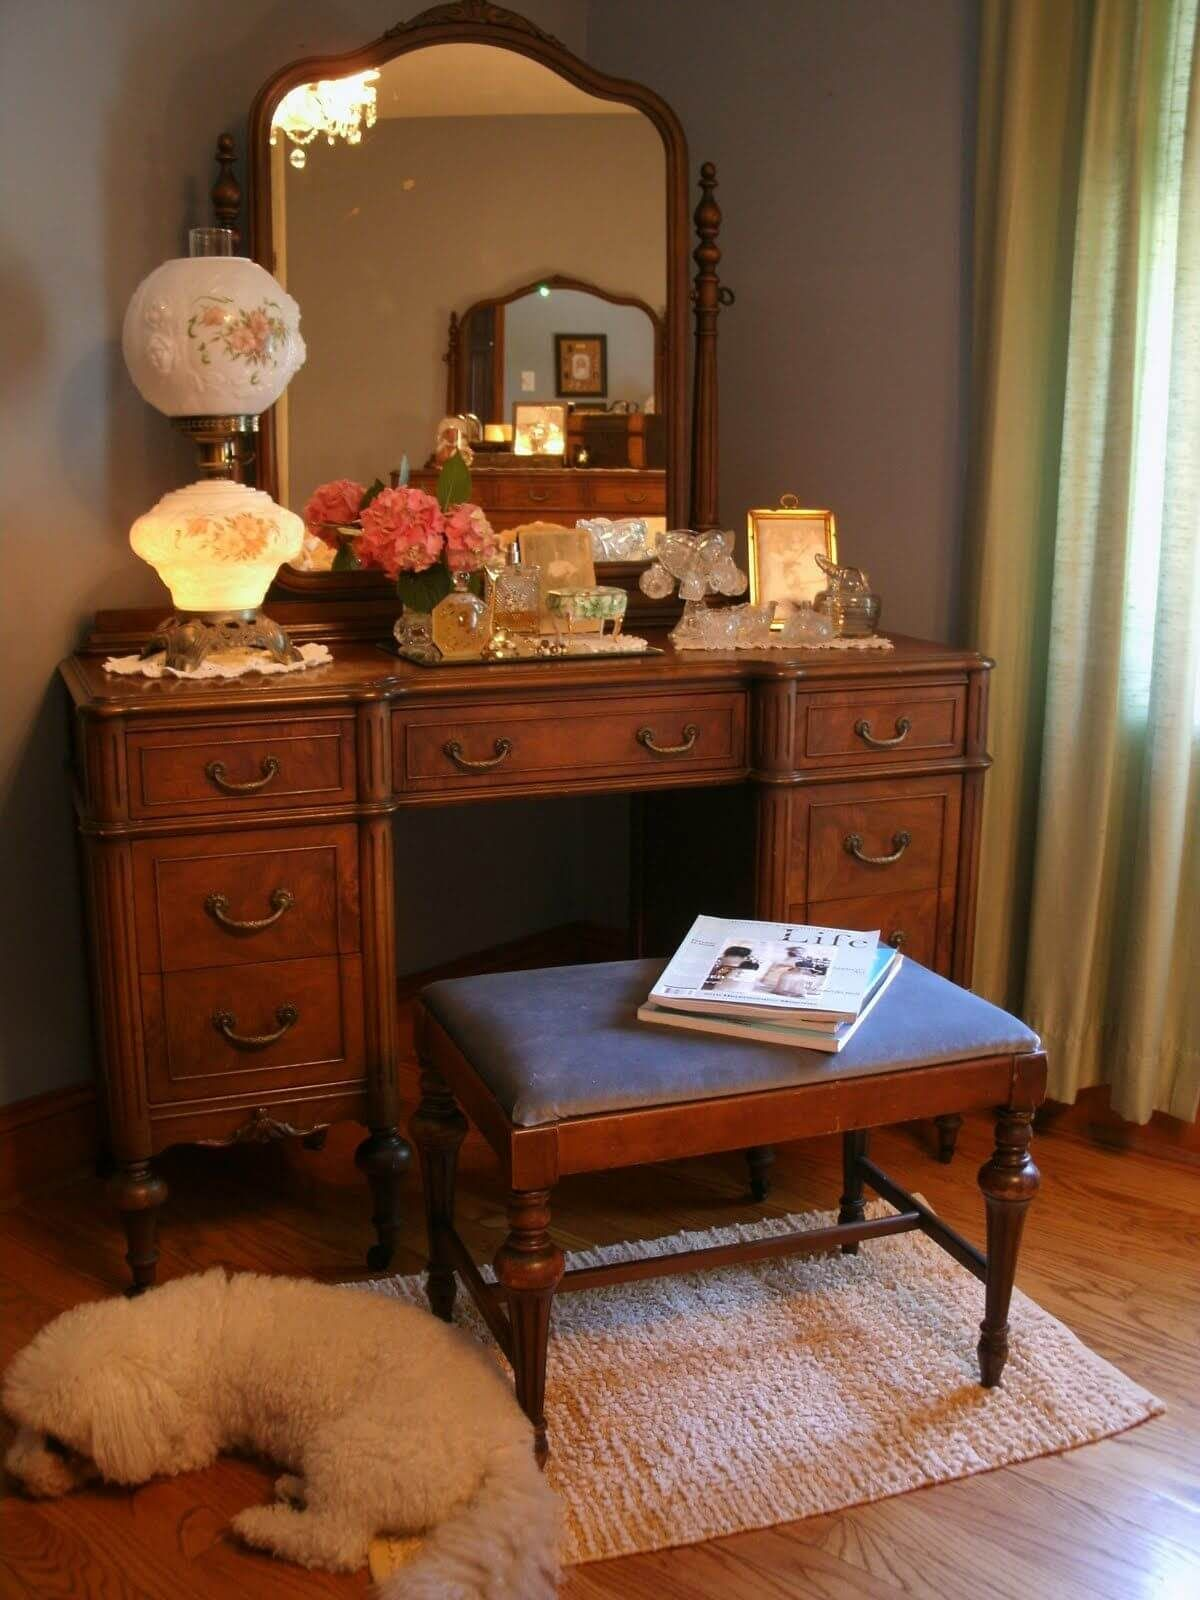 Your Guide To 1940s Furniture Design Bedroom Furniture Sets Vintage Bedroom Sets Bedroom Vintage